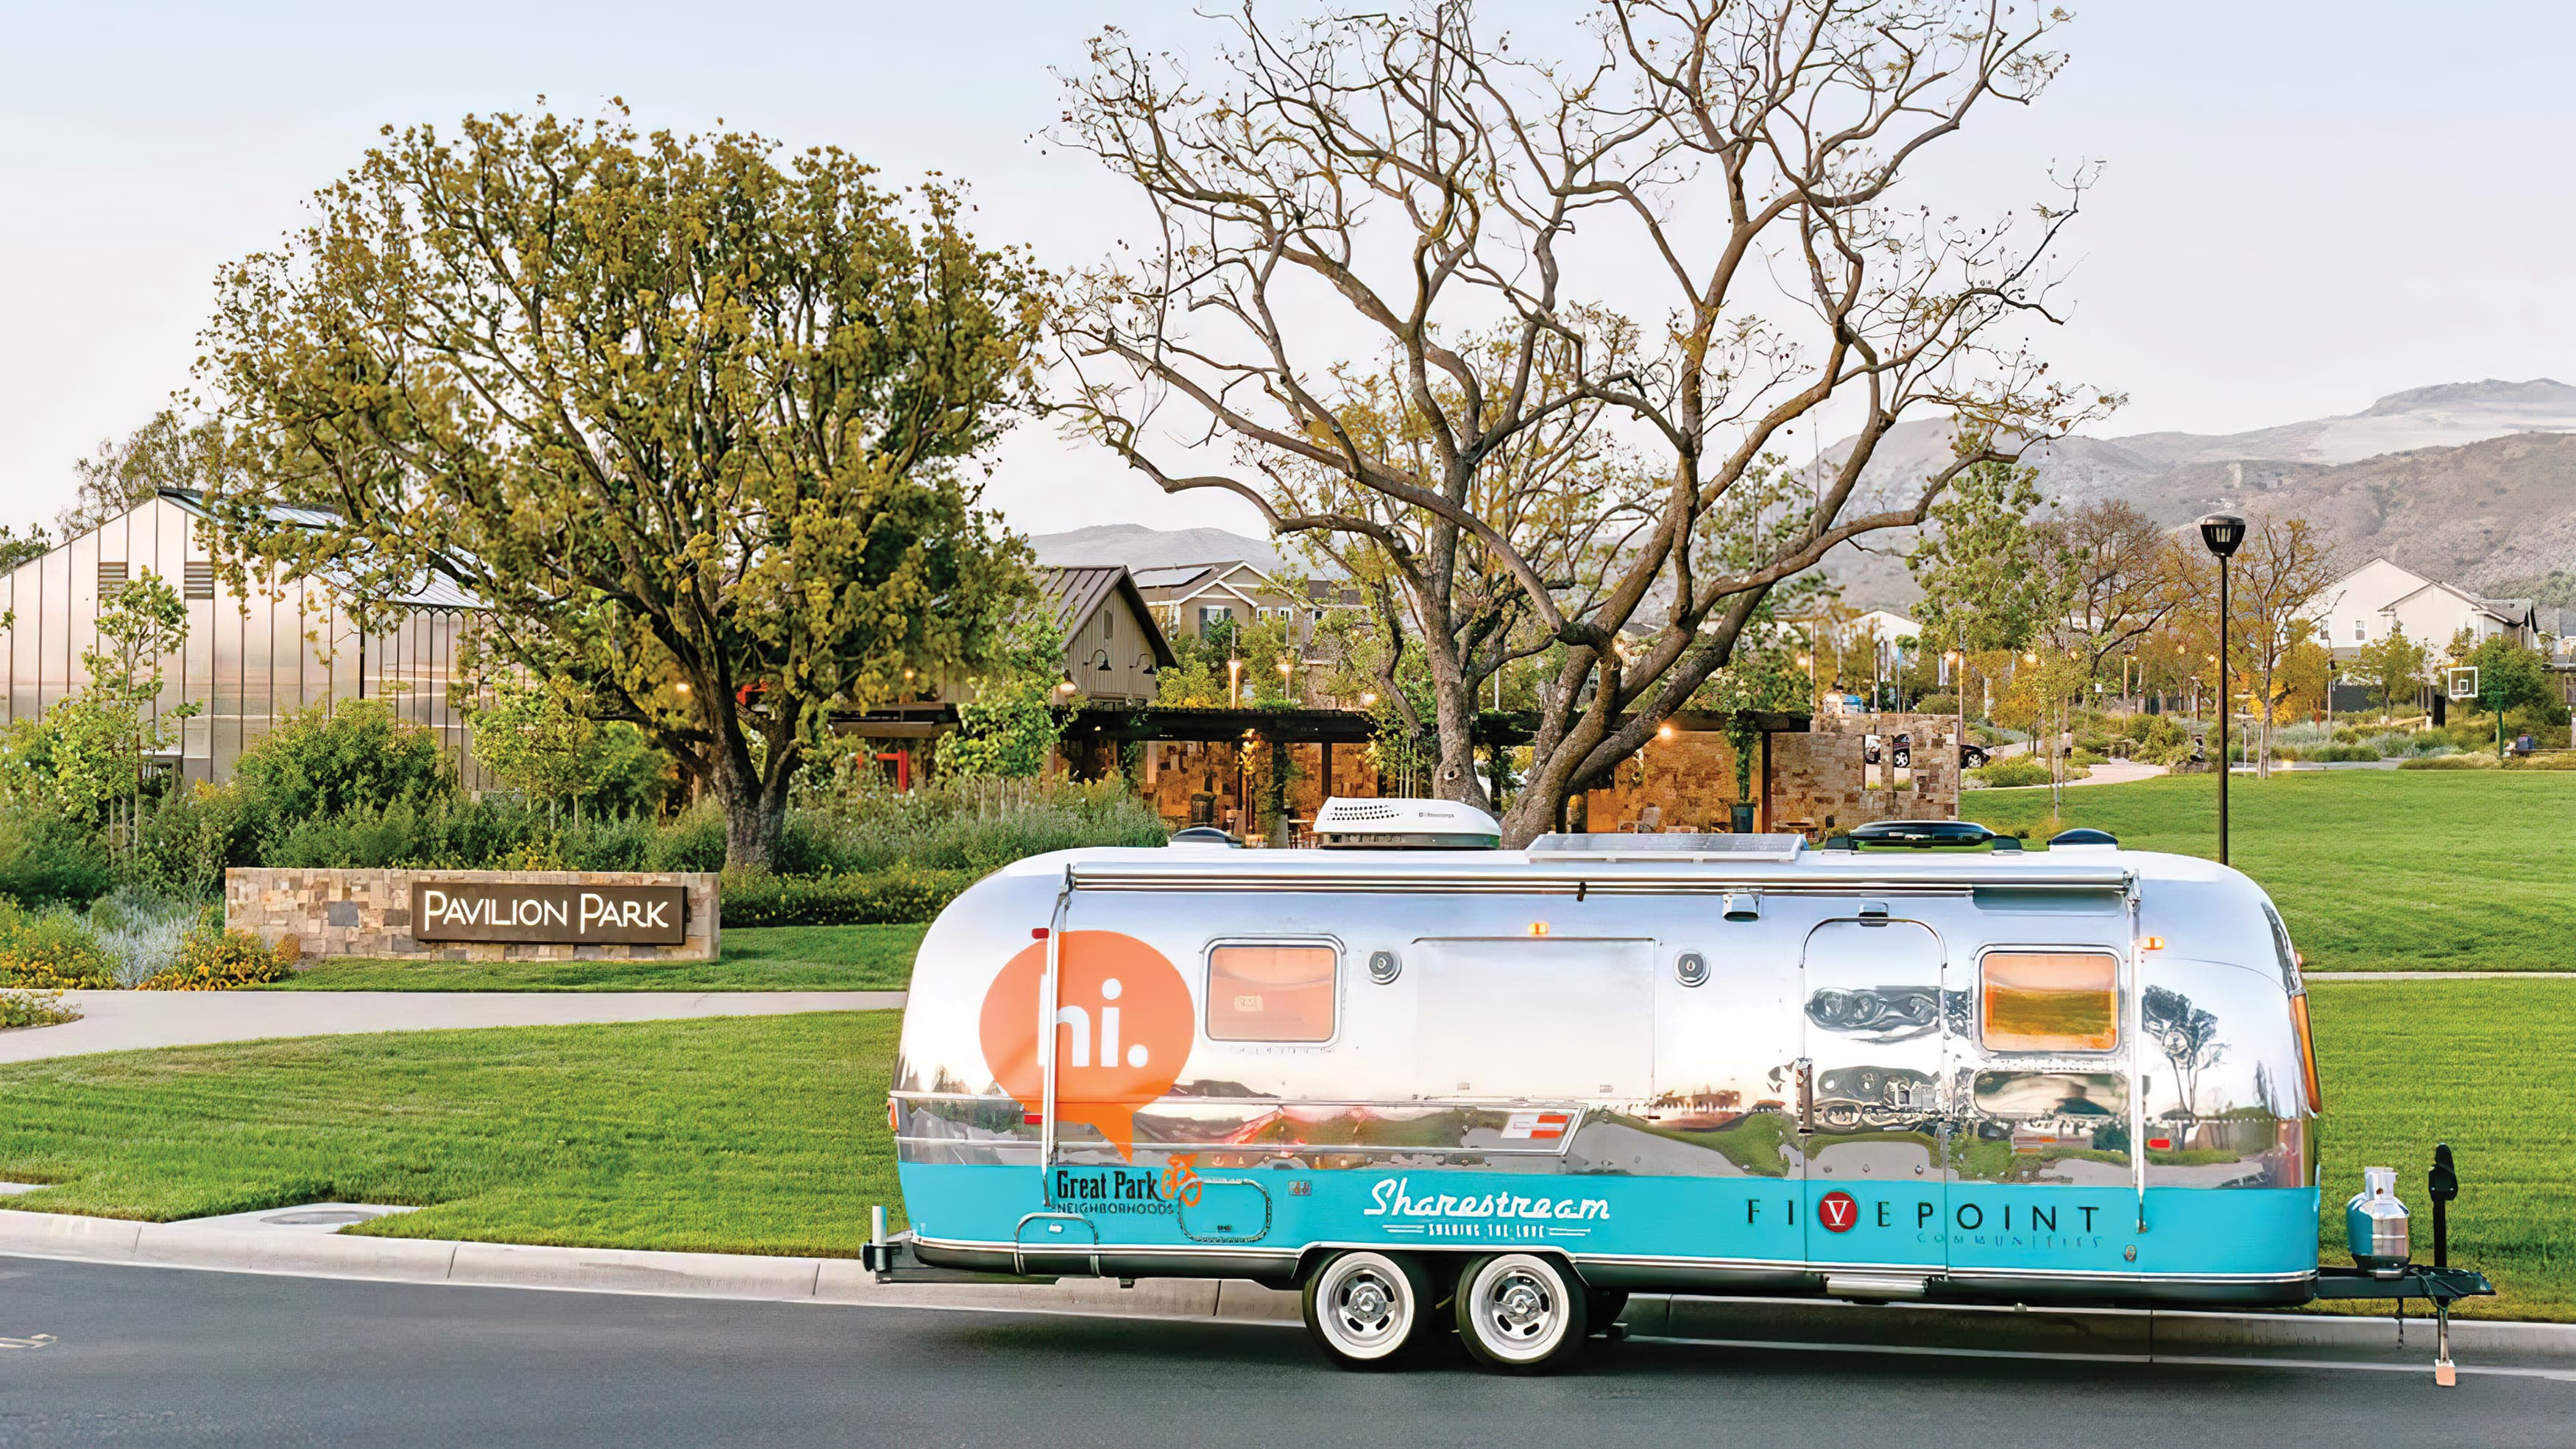 Retro Airstream with FivePoint Communities and Great Park Neighborhoods branding decals.